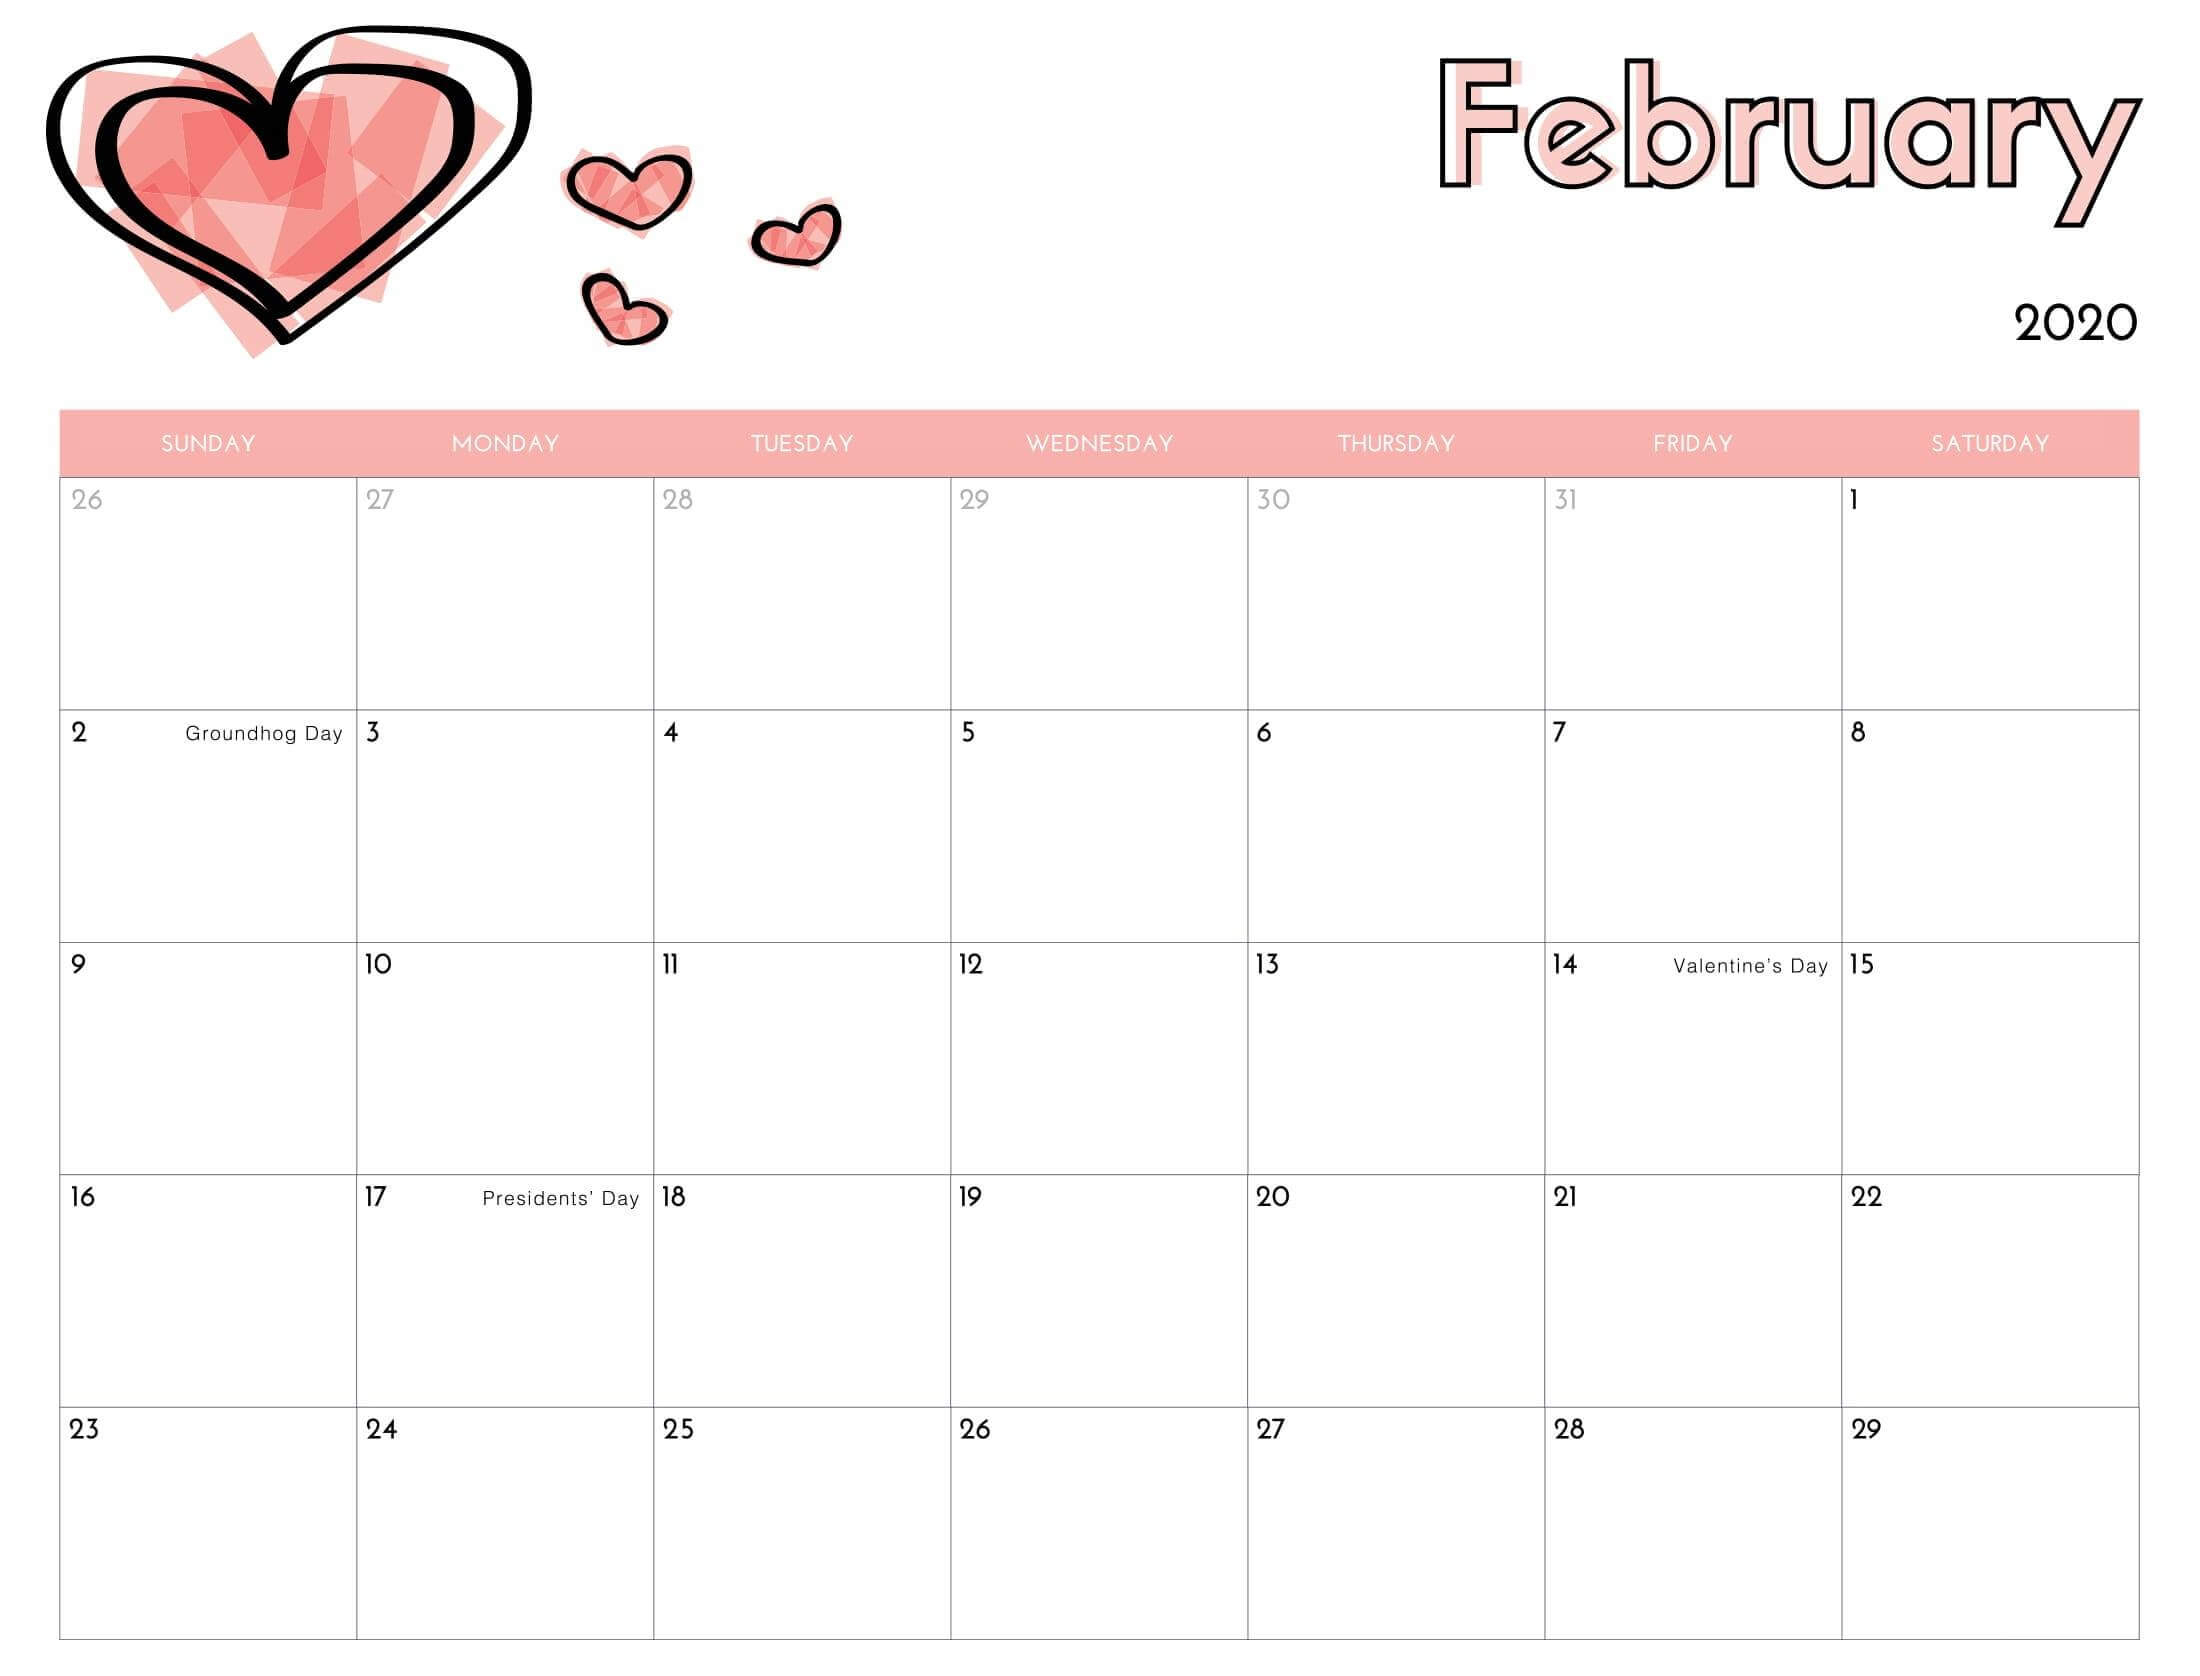 Calendar 2020 Excel  February 2020 Calendar Excel | Monthly within Calendar 2020 Excel Hong Kong